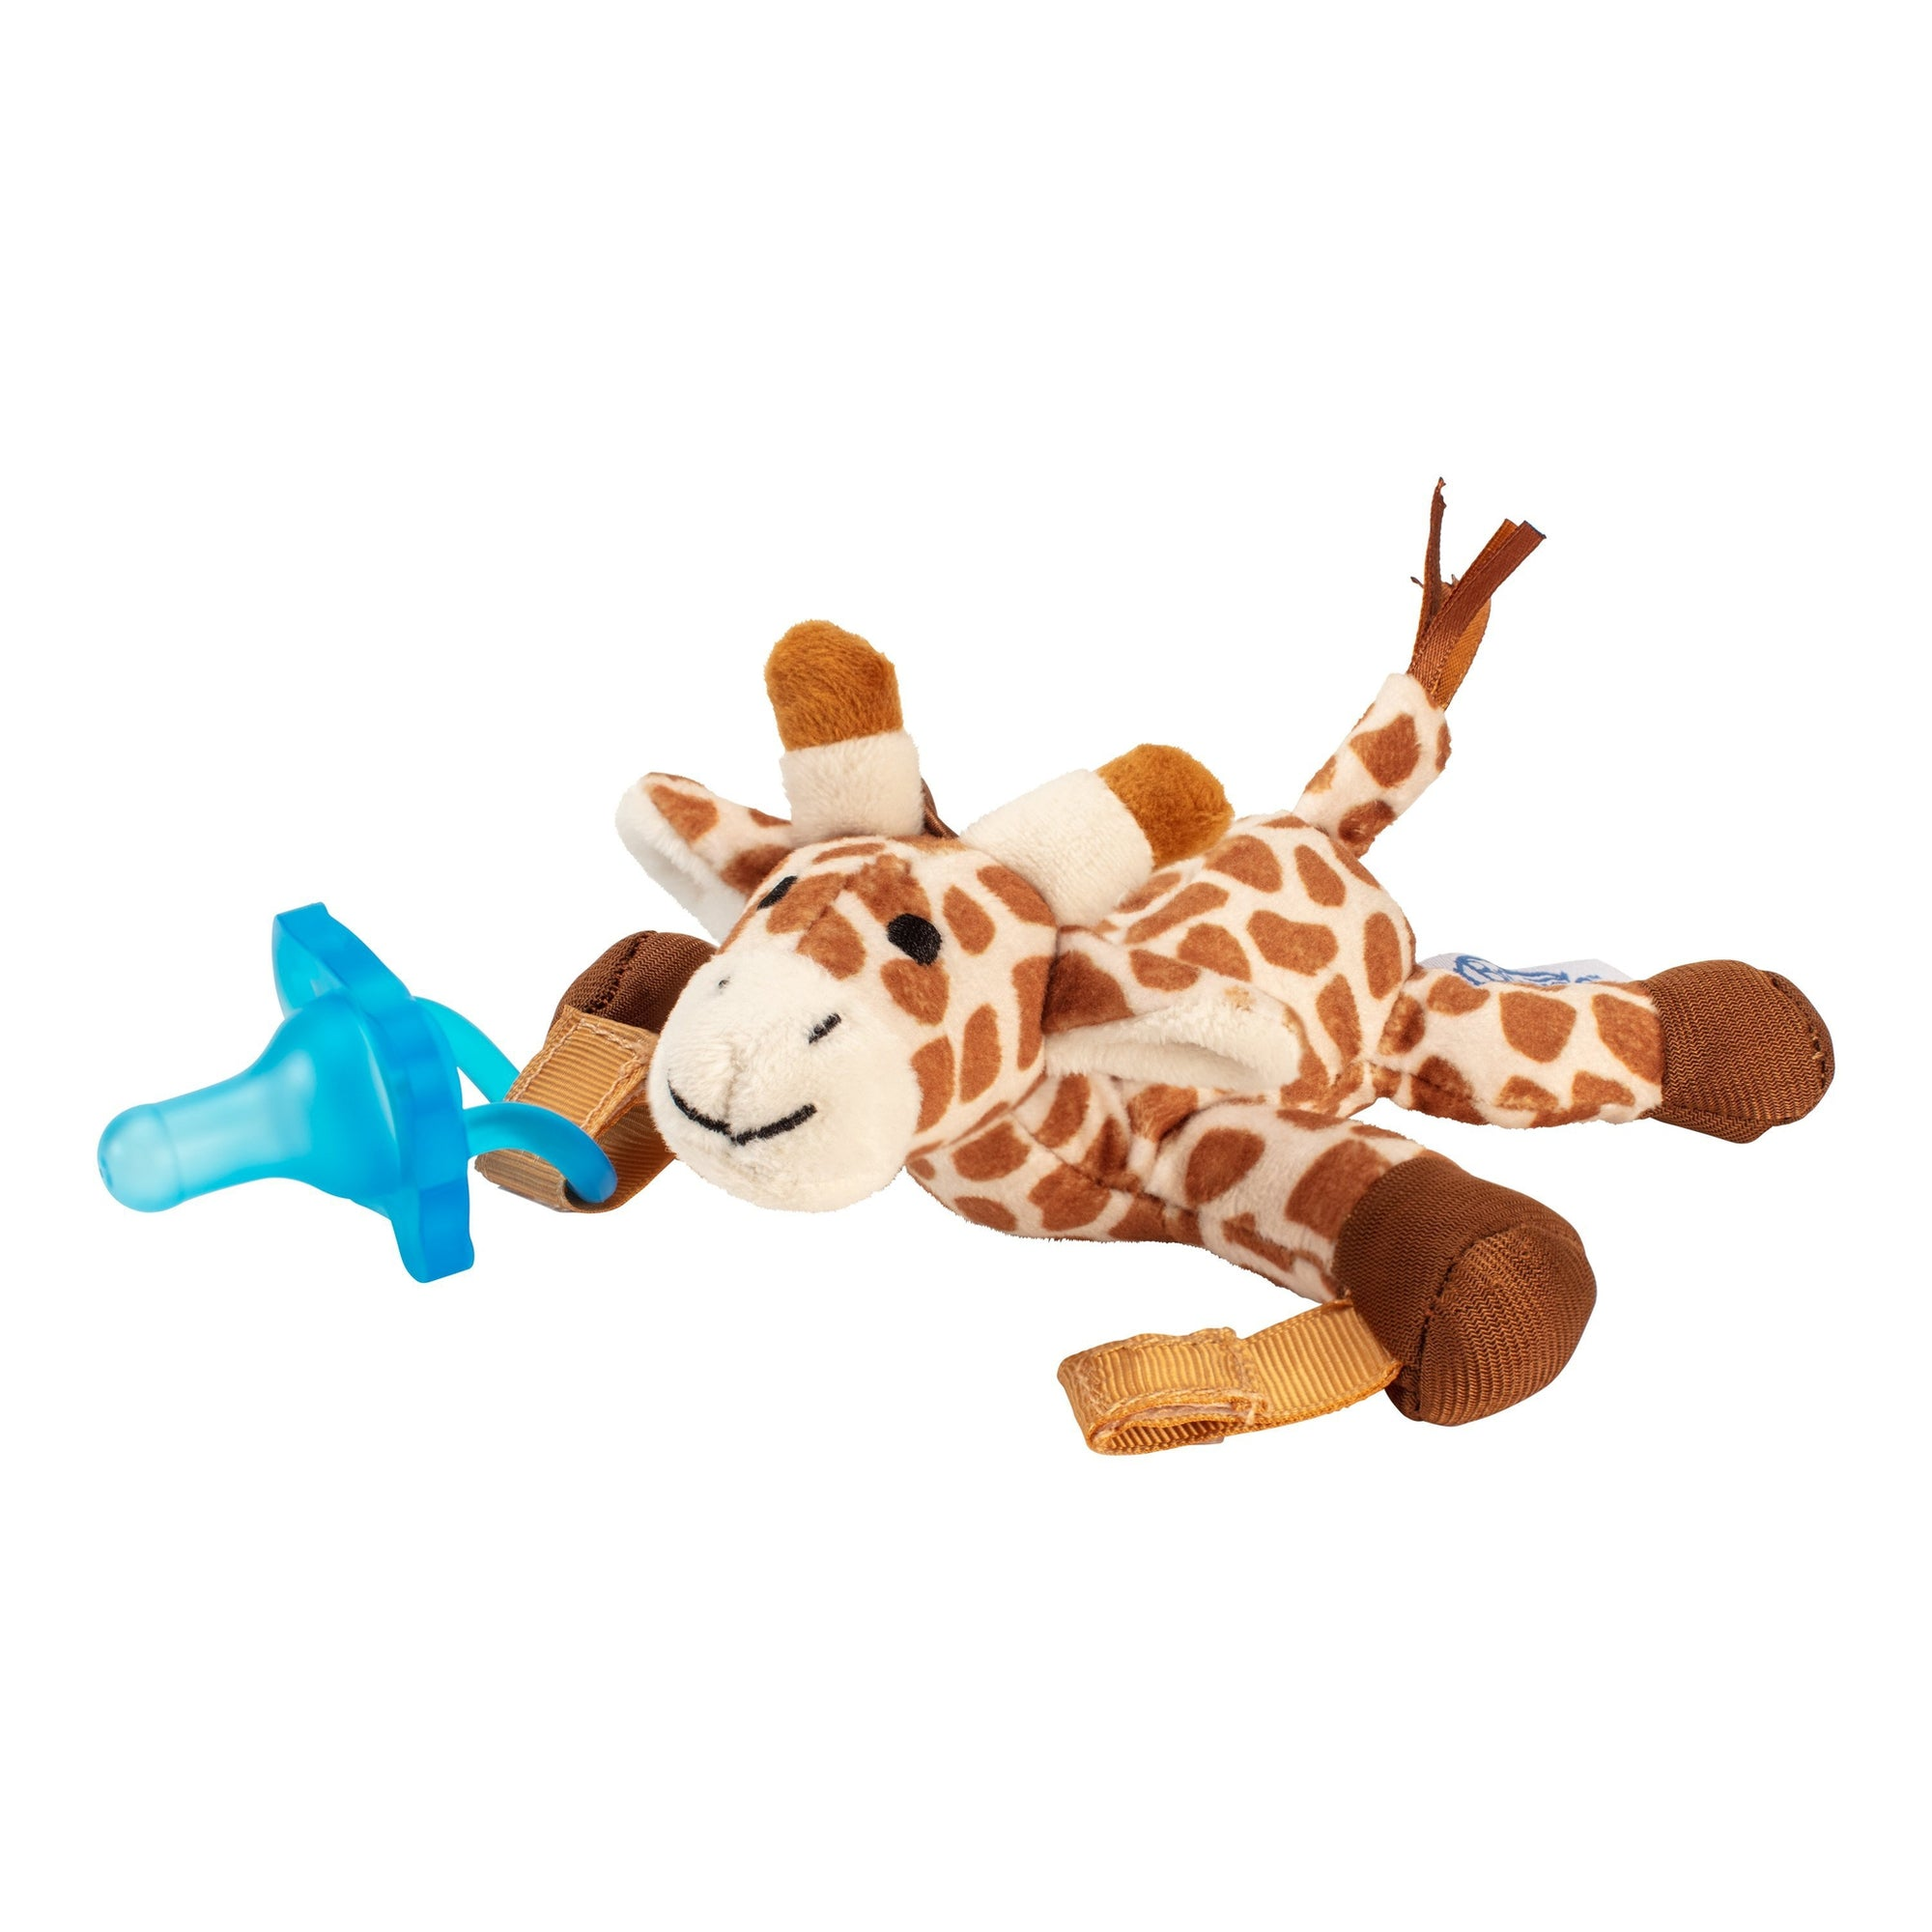 Dr. Brown's Giraffe Lovey with Blue One Piece Pacifier-Pacifier-Mother and Baby Shop Kenya's #1 Online Baby Shop